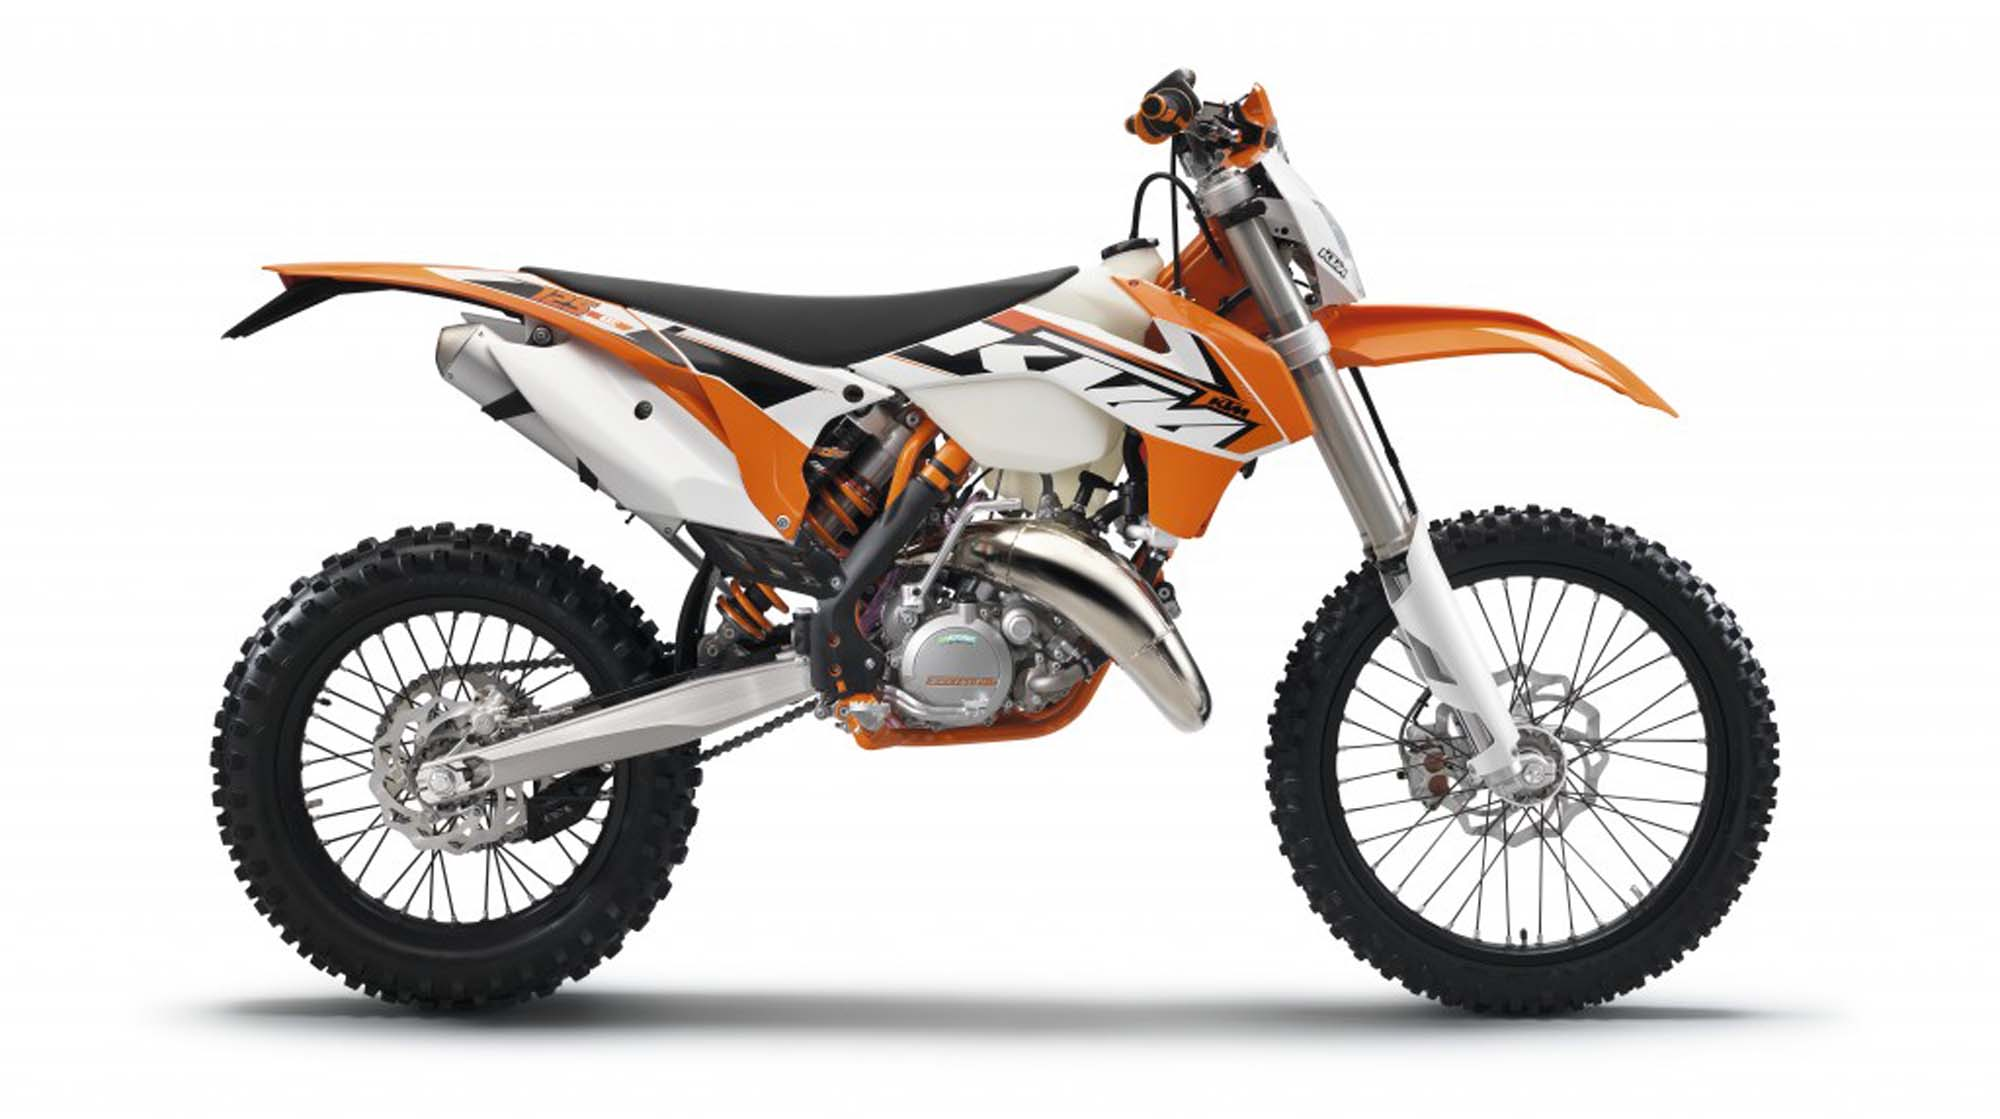 motocross ktm 125ccm motorrad bild idee. Black Bedroom Furniture Sets. Home Design Ideas